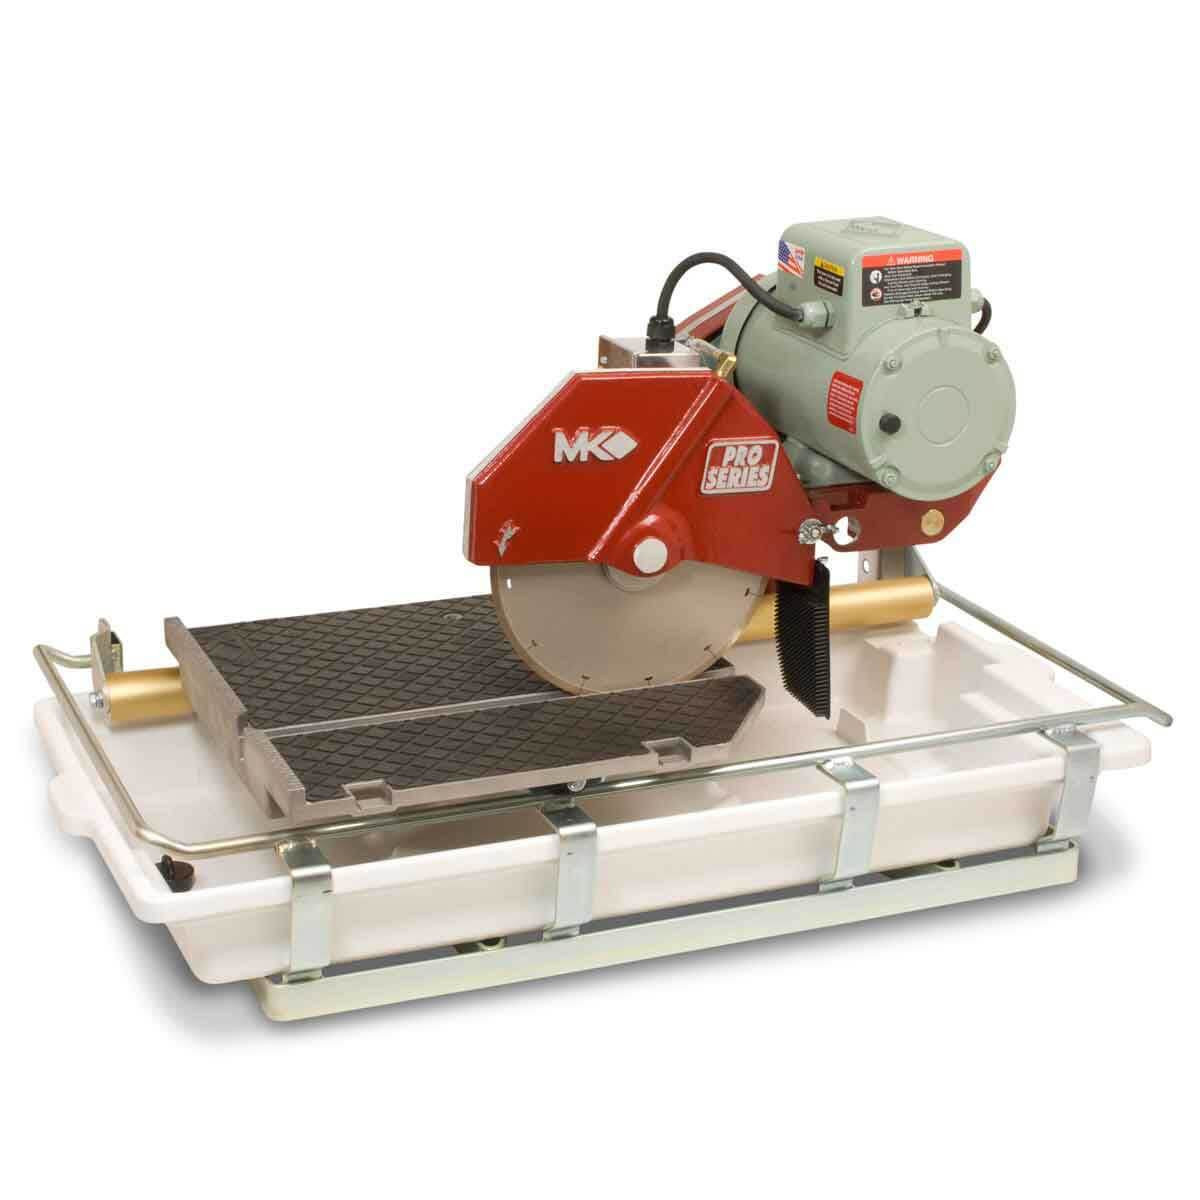 Mk 101 Pro Wet Tile Saw